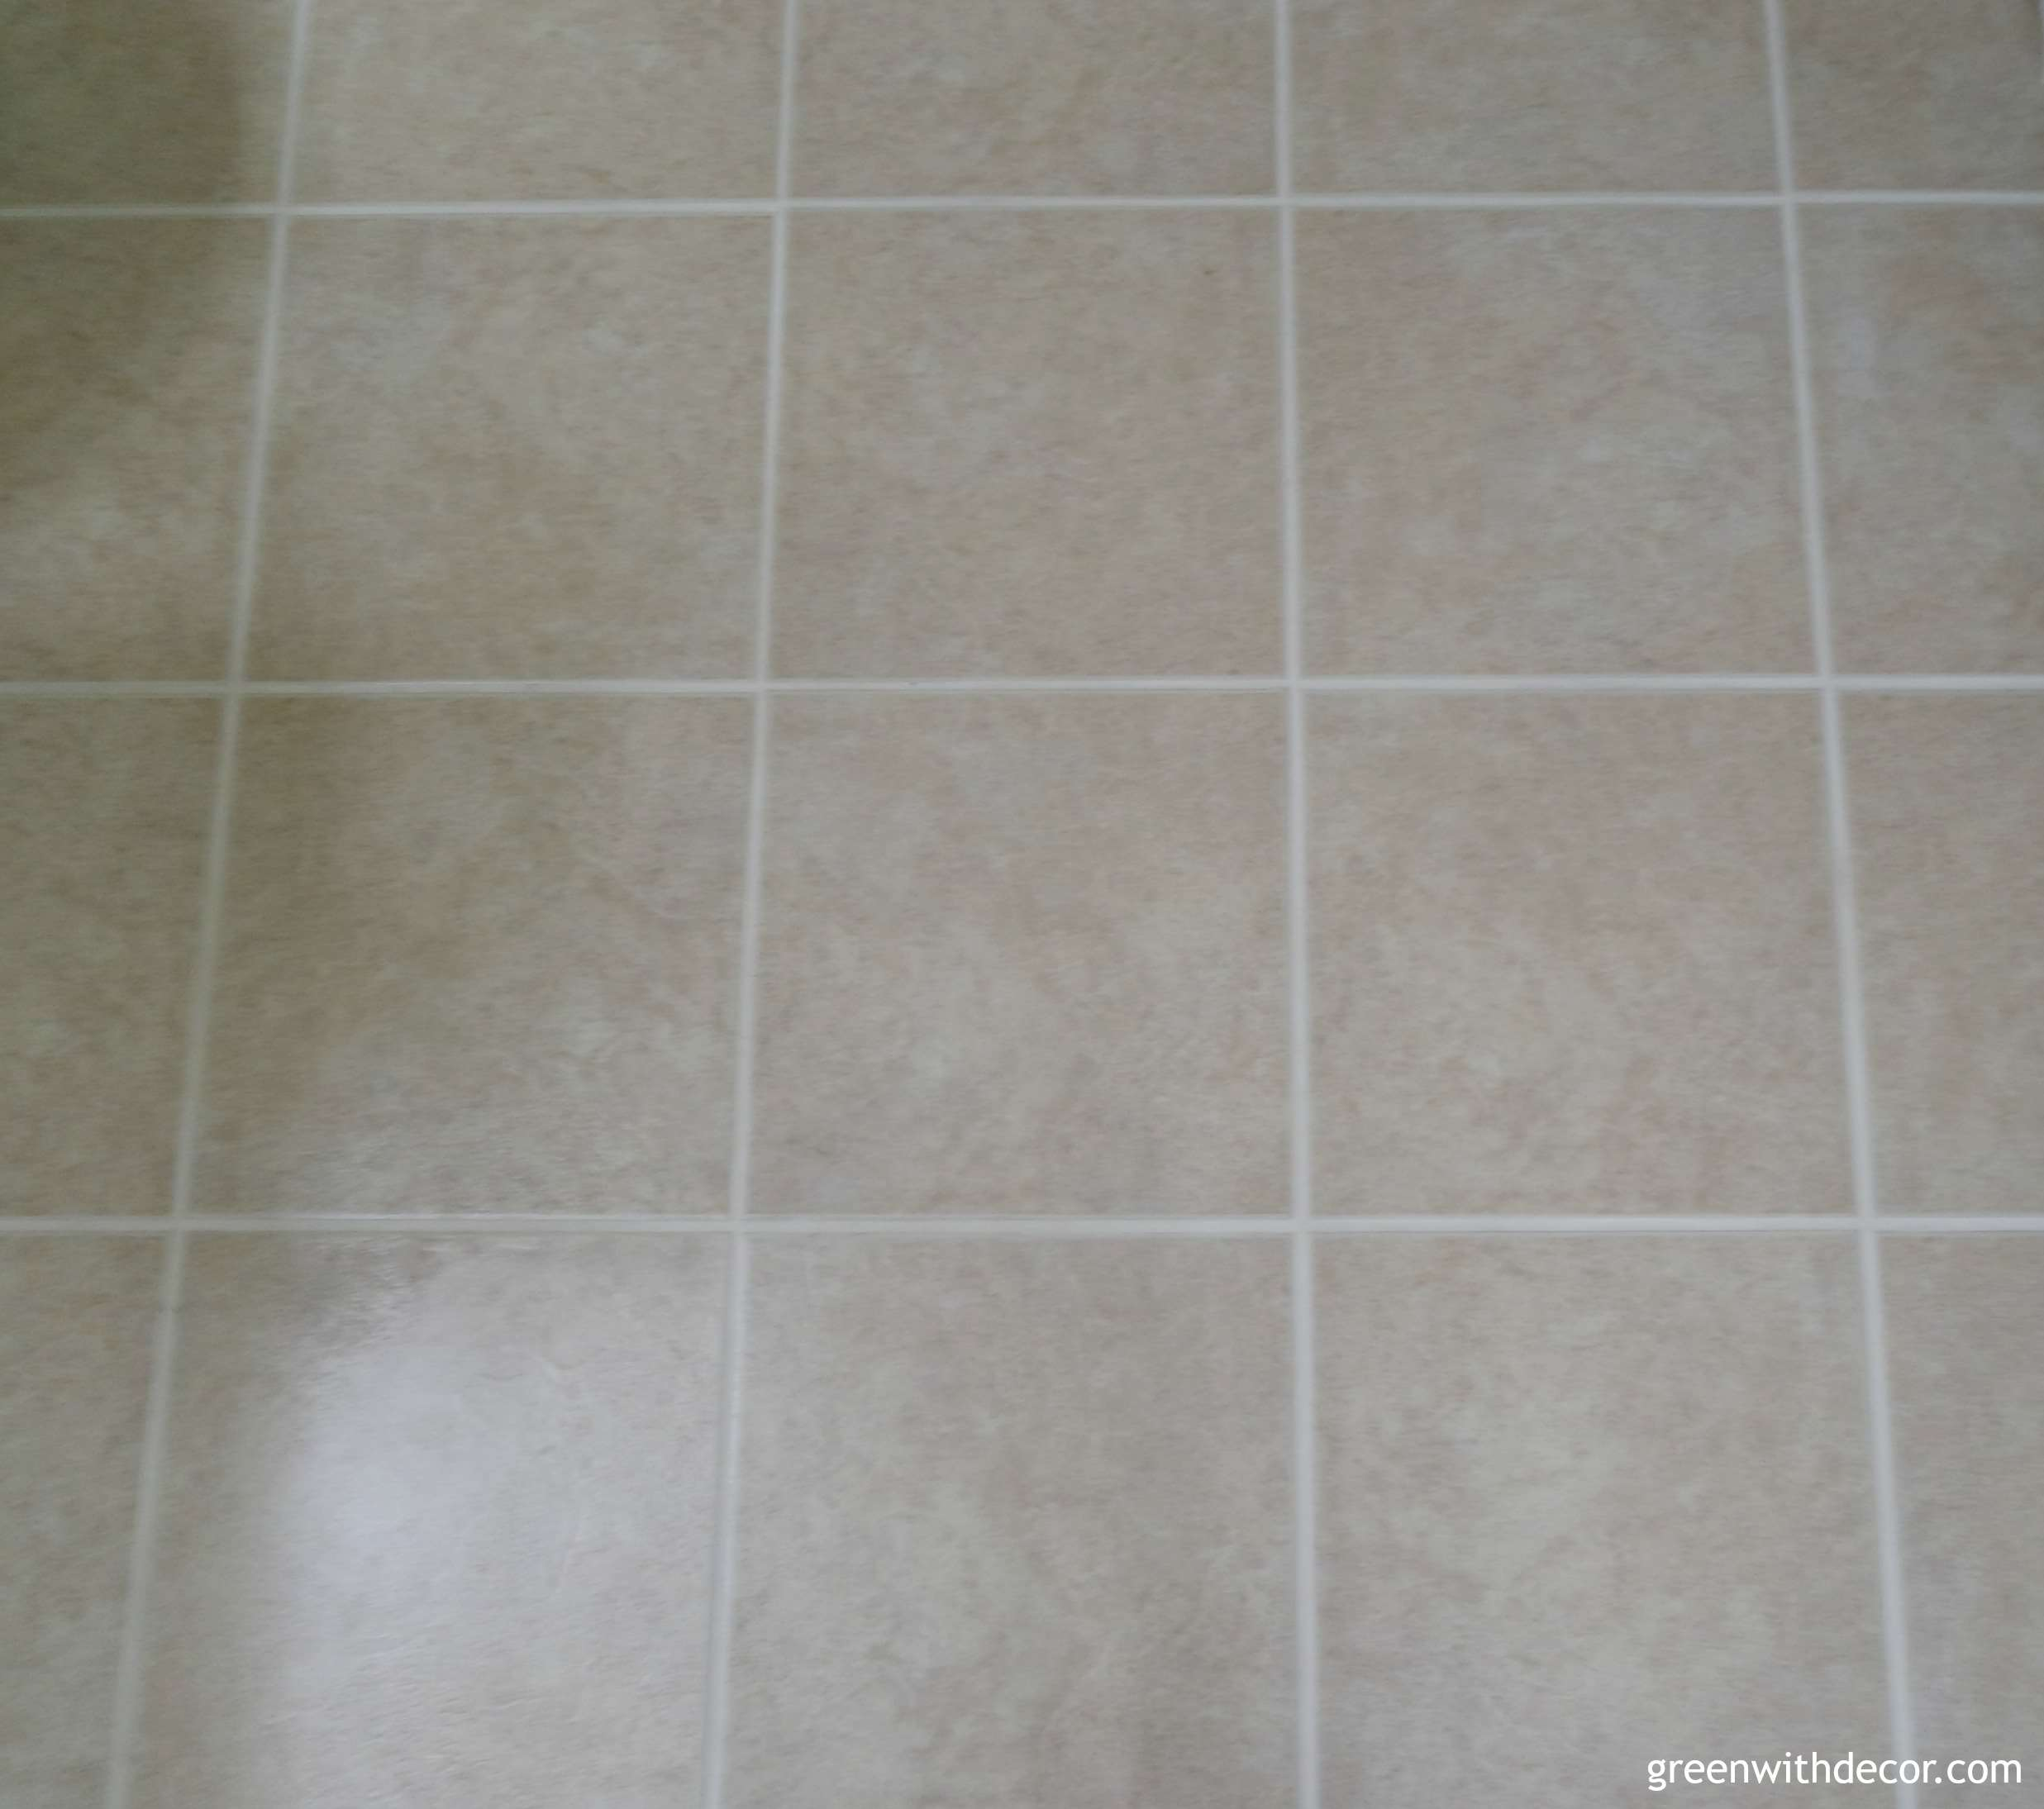 Tips for choosing the bathroom floor | Green with Decor